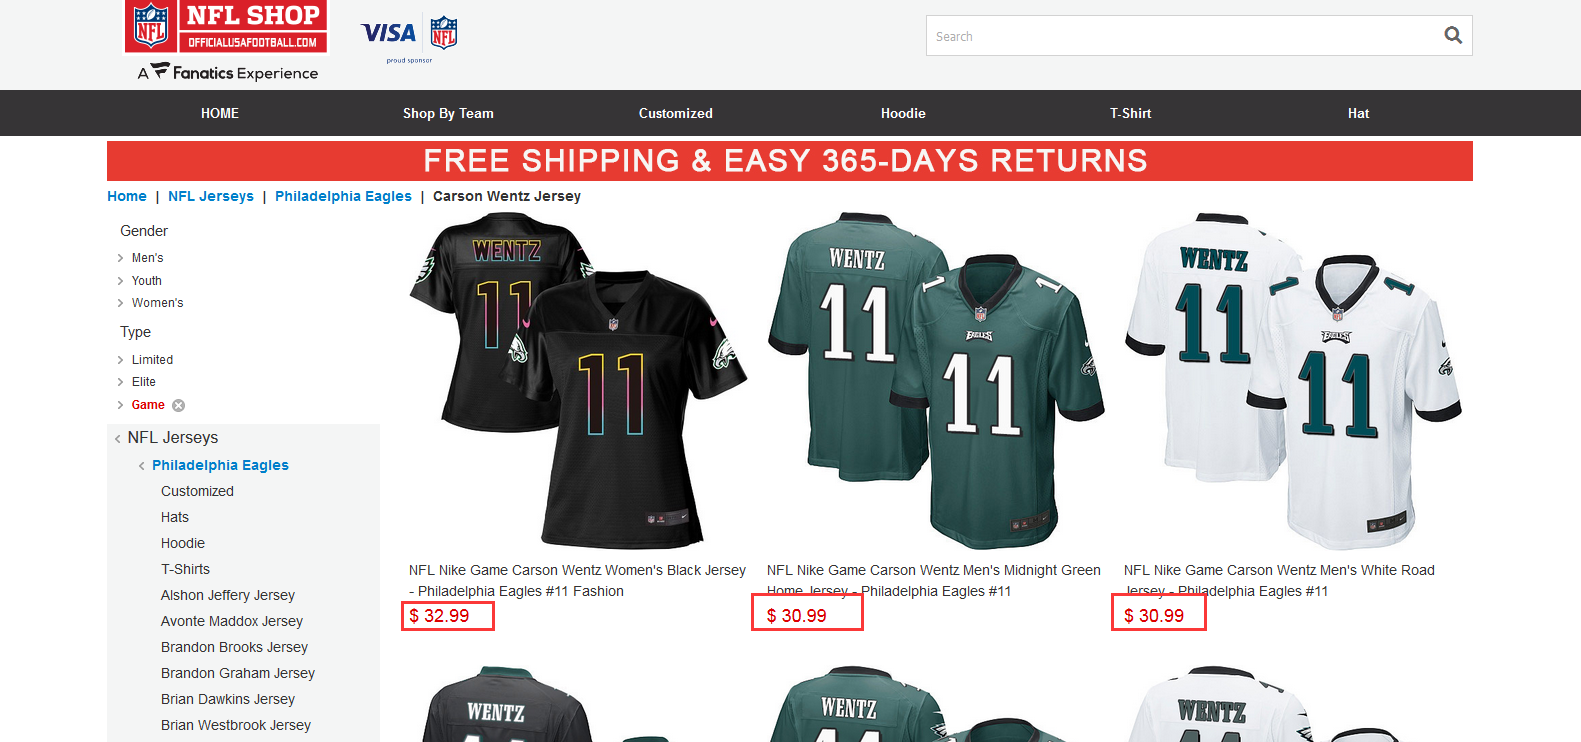 What is a good website to buy sports jerseys  - Quora 34ca4efe2ff5